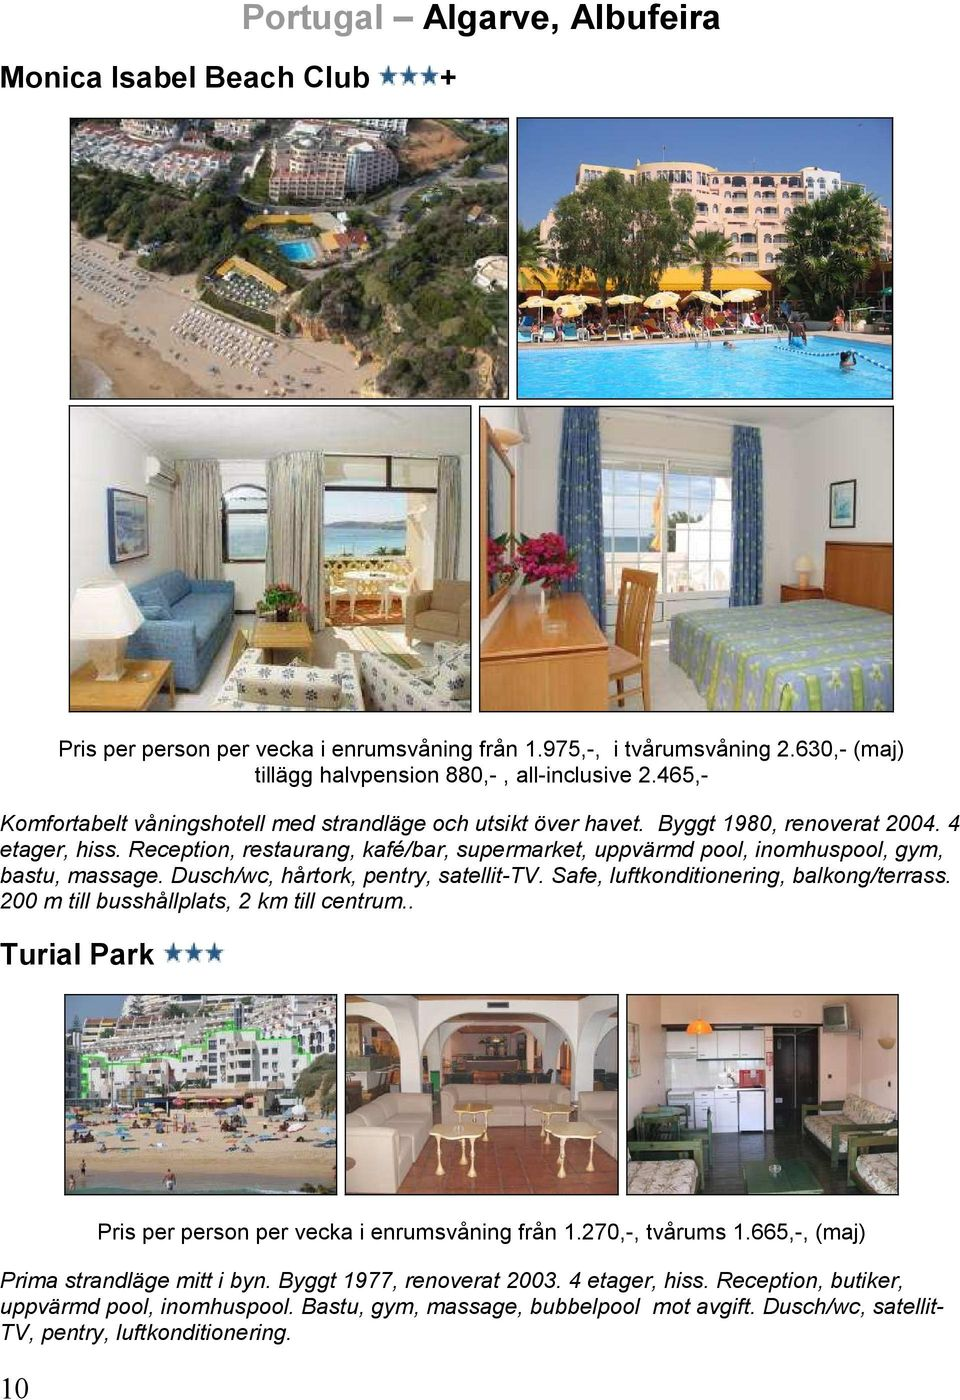 Reception, restaurang, kafé/bar, supermarket, uppvärmd pool, inomhuspool, gym, bastu, massage. Dusch/wc, hårtork, pentry, satellit-tv. Safe, luftkonditionering, balkong/terrass.